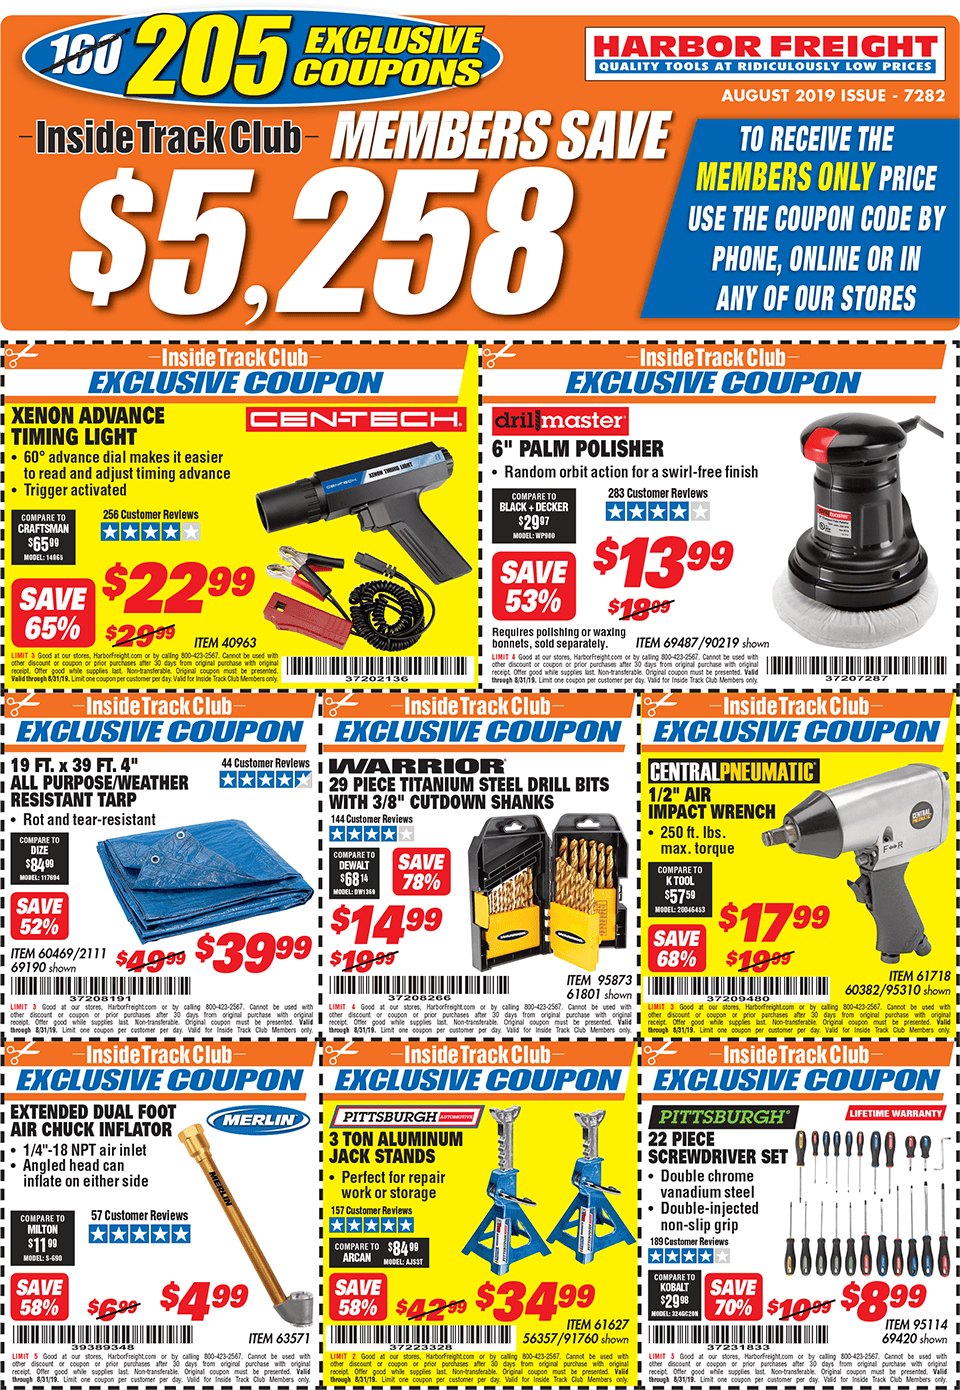 Harbor Freight Inside Track Club Coupons – August 2019